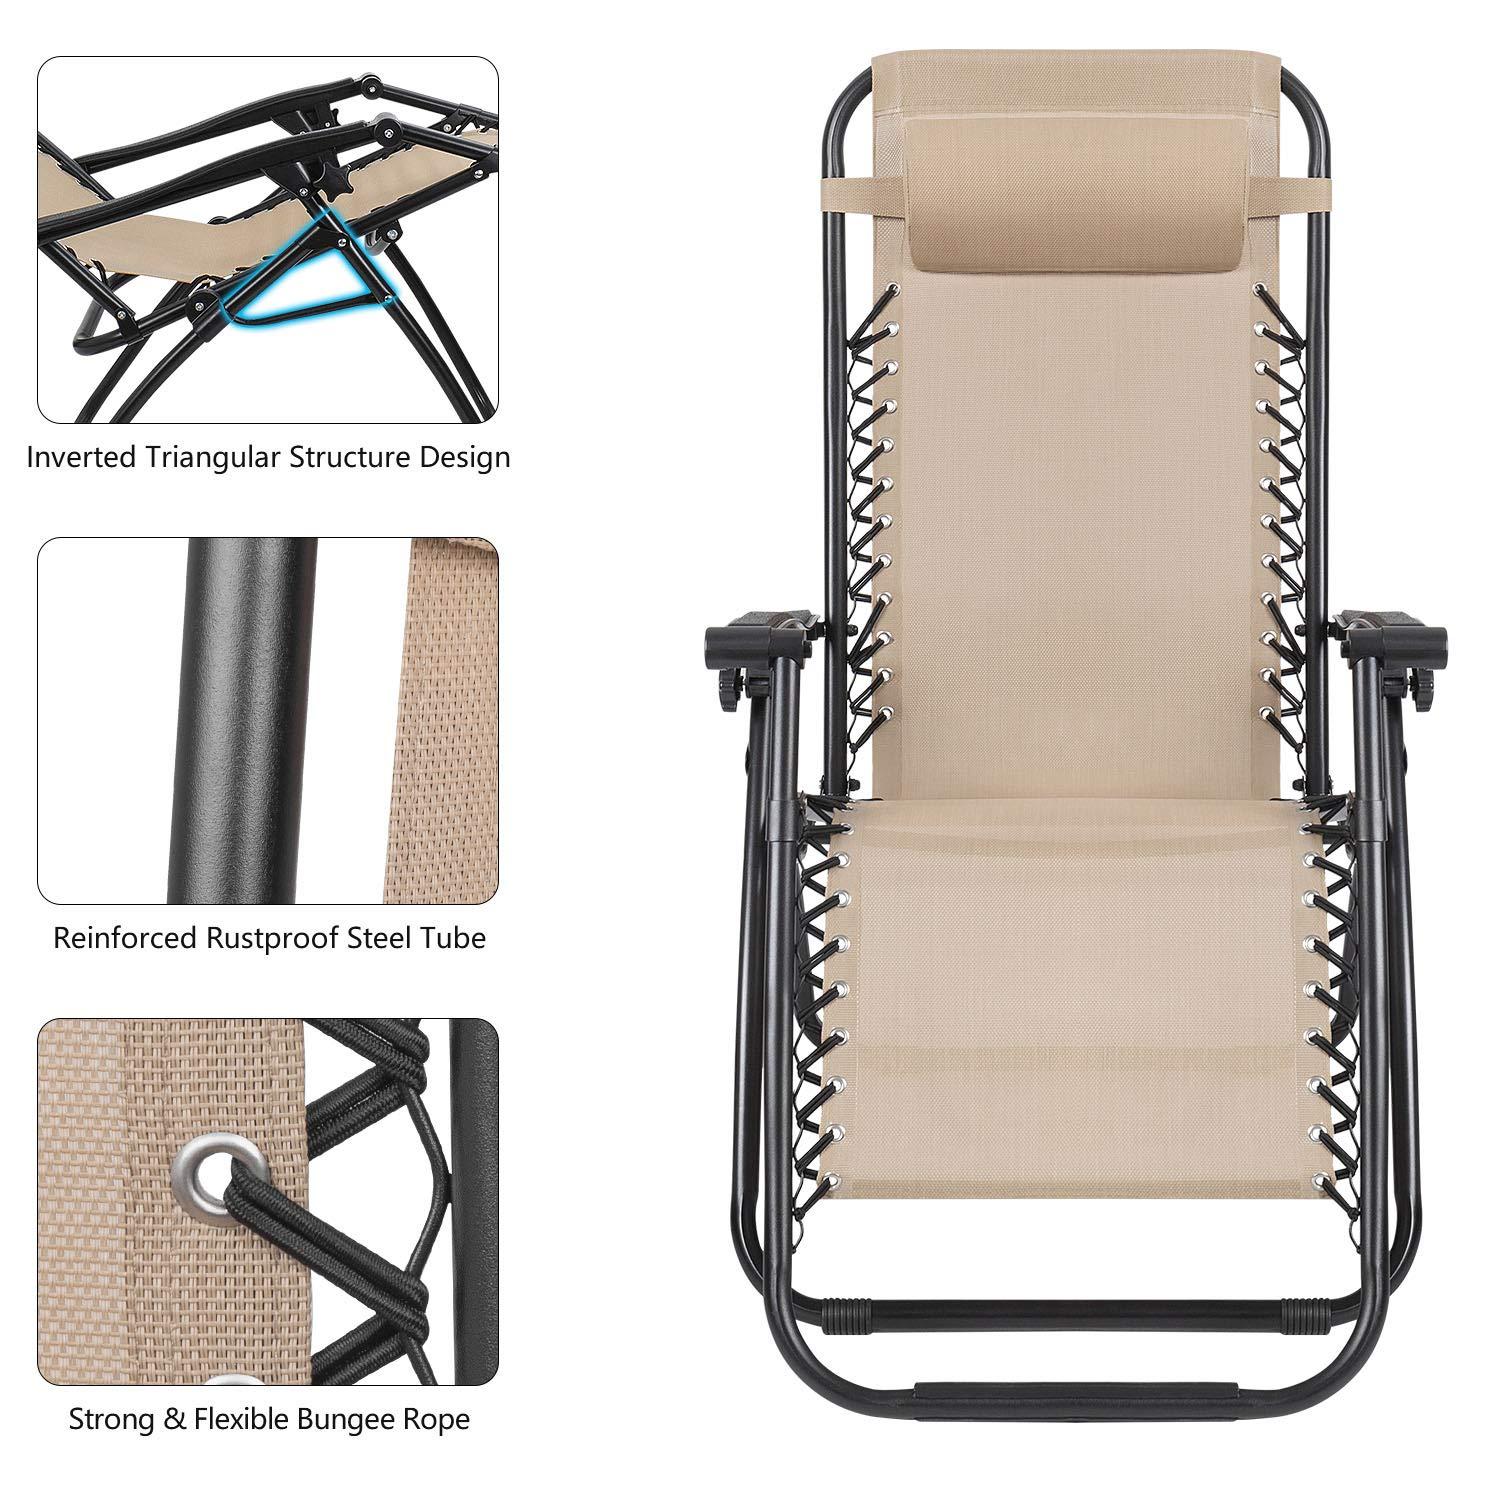 Devoko Patio Zero Gravity Chair Outdoor Folding Adjustable Reclining Chairs Pool Side Using Lawn Lounge Chair with Pillow Set of 2 (Beige) by Devoko (Image #4)